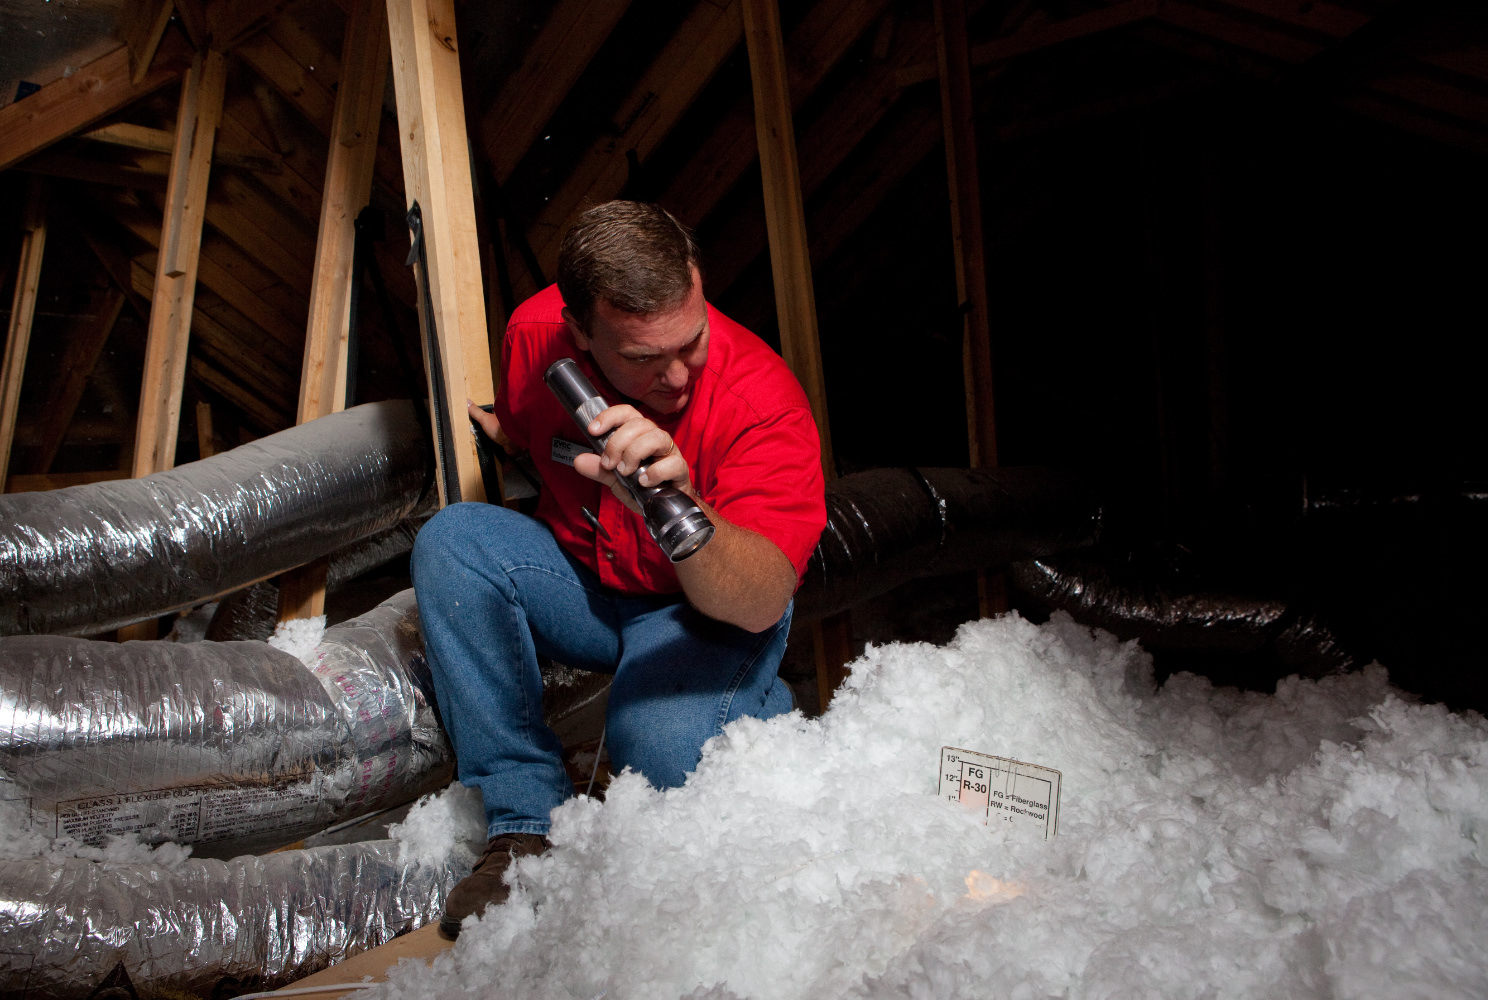 Man in attic with insulation